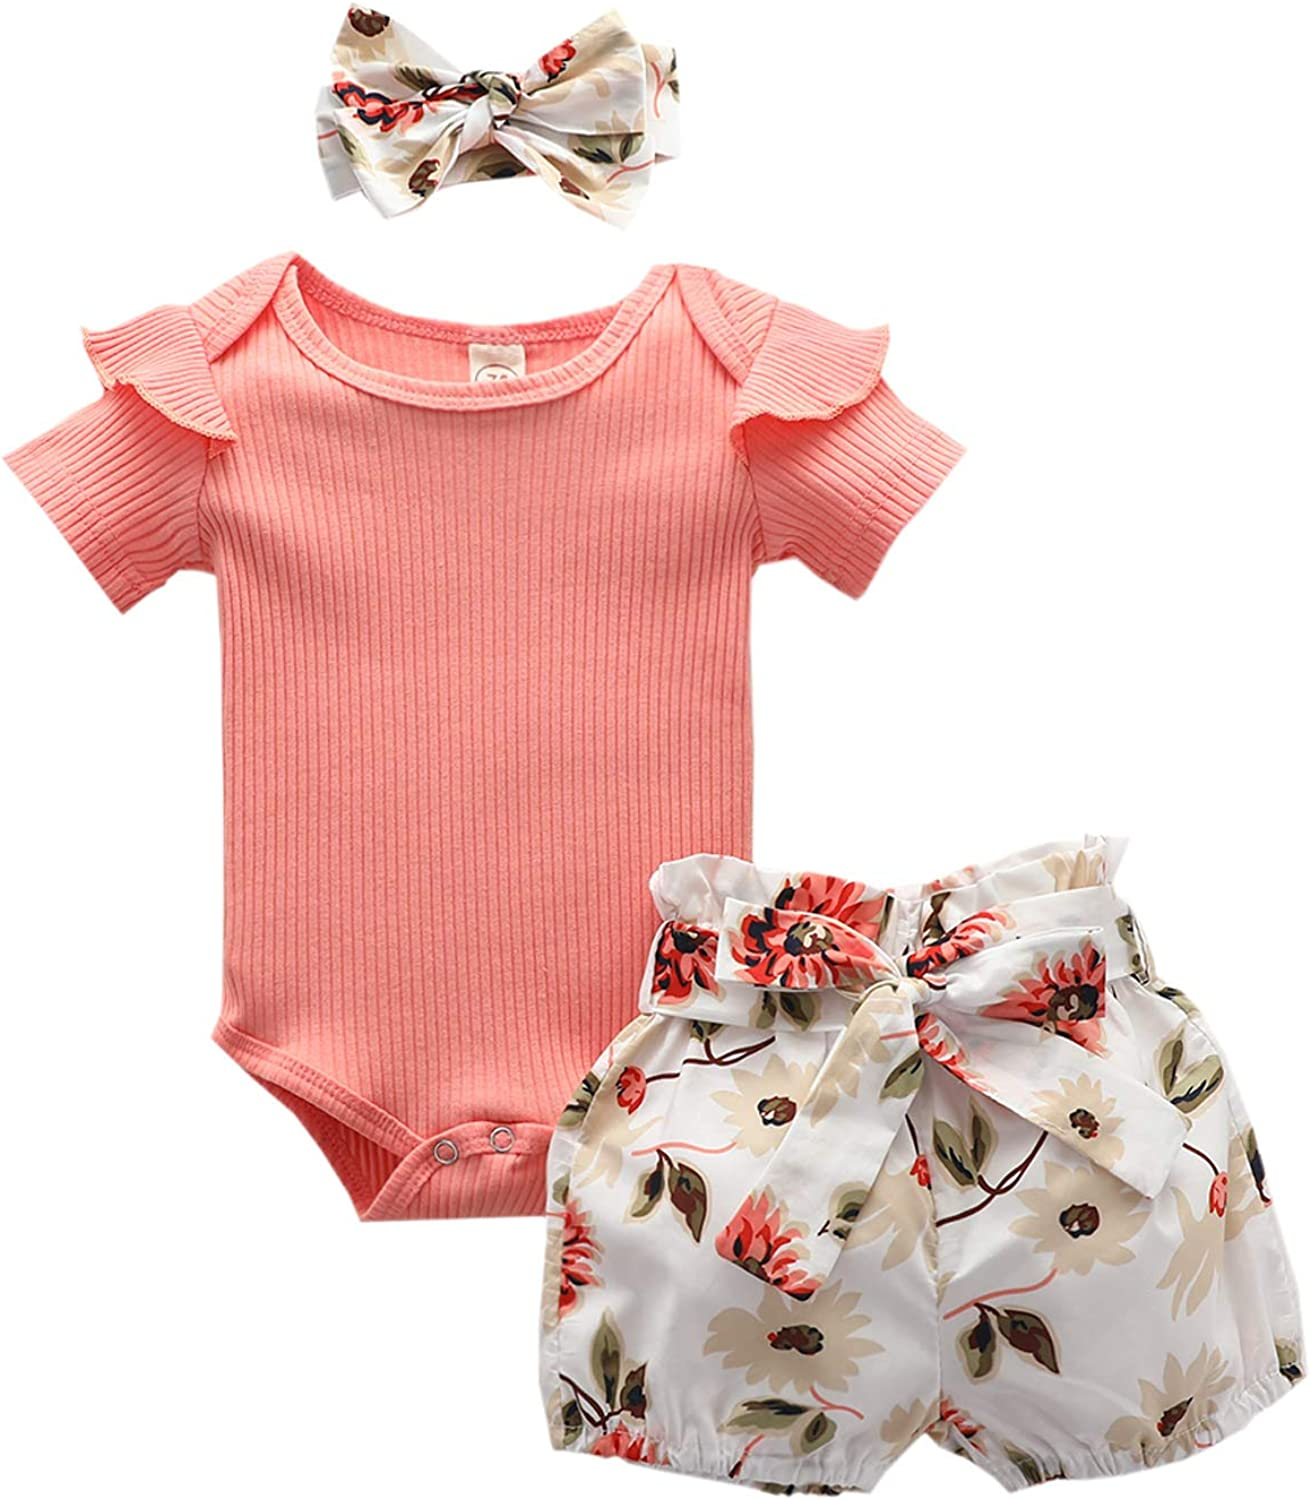 Bliweek Toddler Baby Girl Clothes Summer Reservation Max 76% OFF Cute Outfit